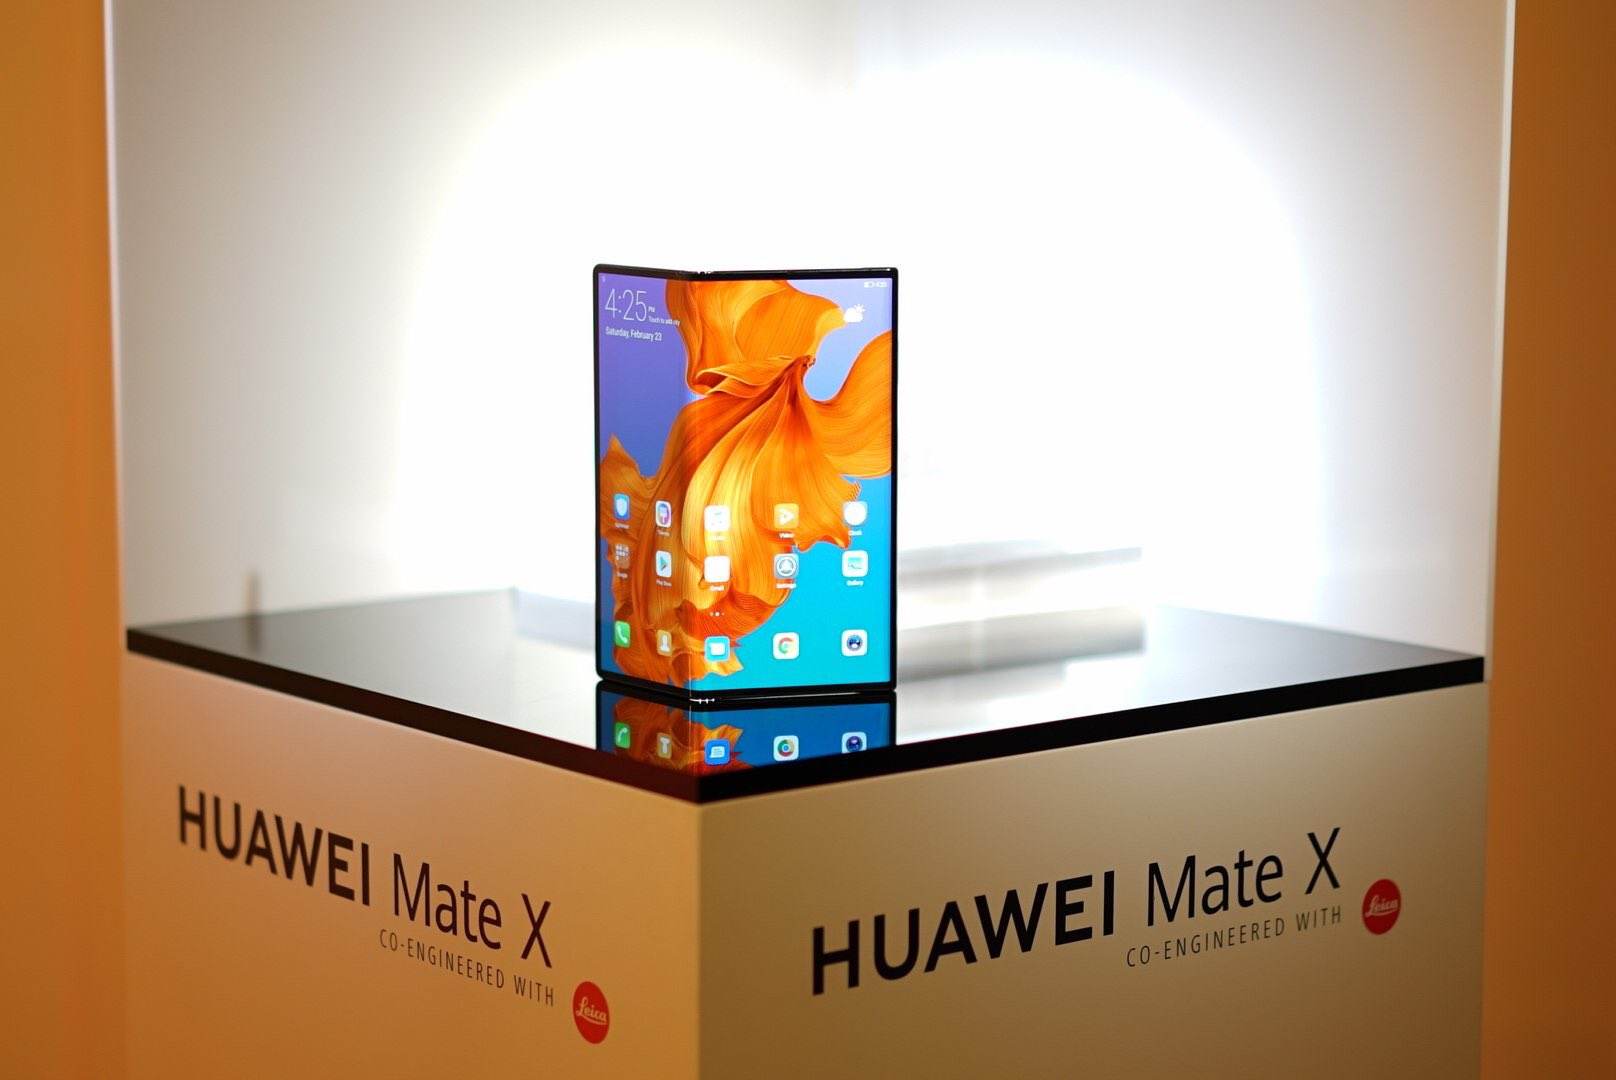 Sforum - The latest technology information site Huawei-Mate-X-offical Huawei Mate X is certified in China, ready for sale?